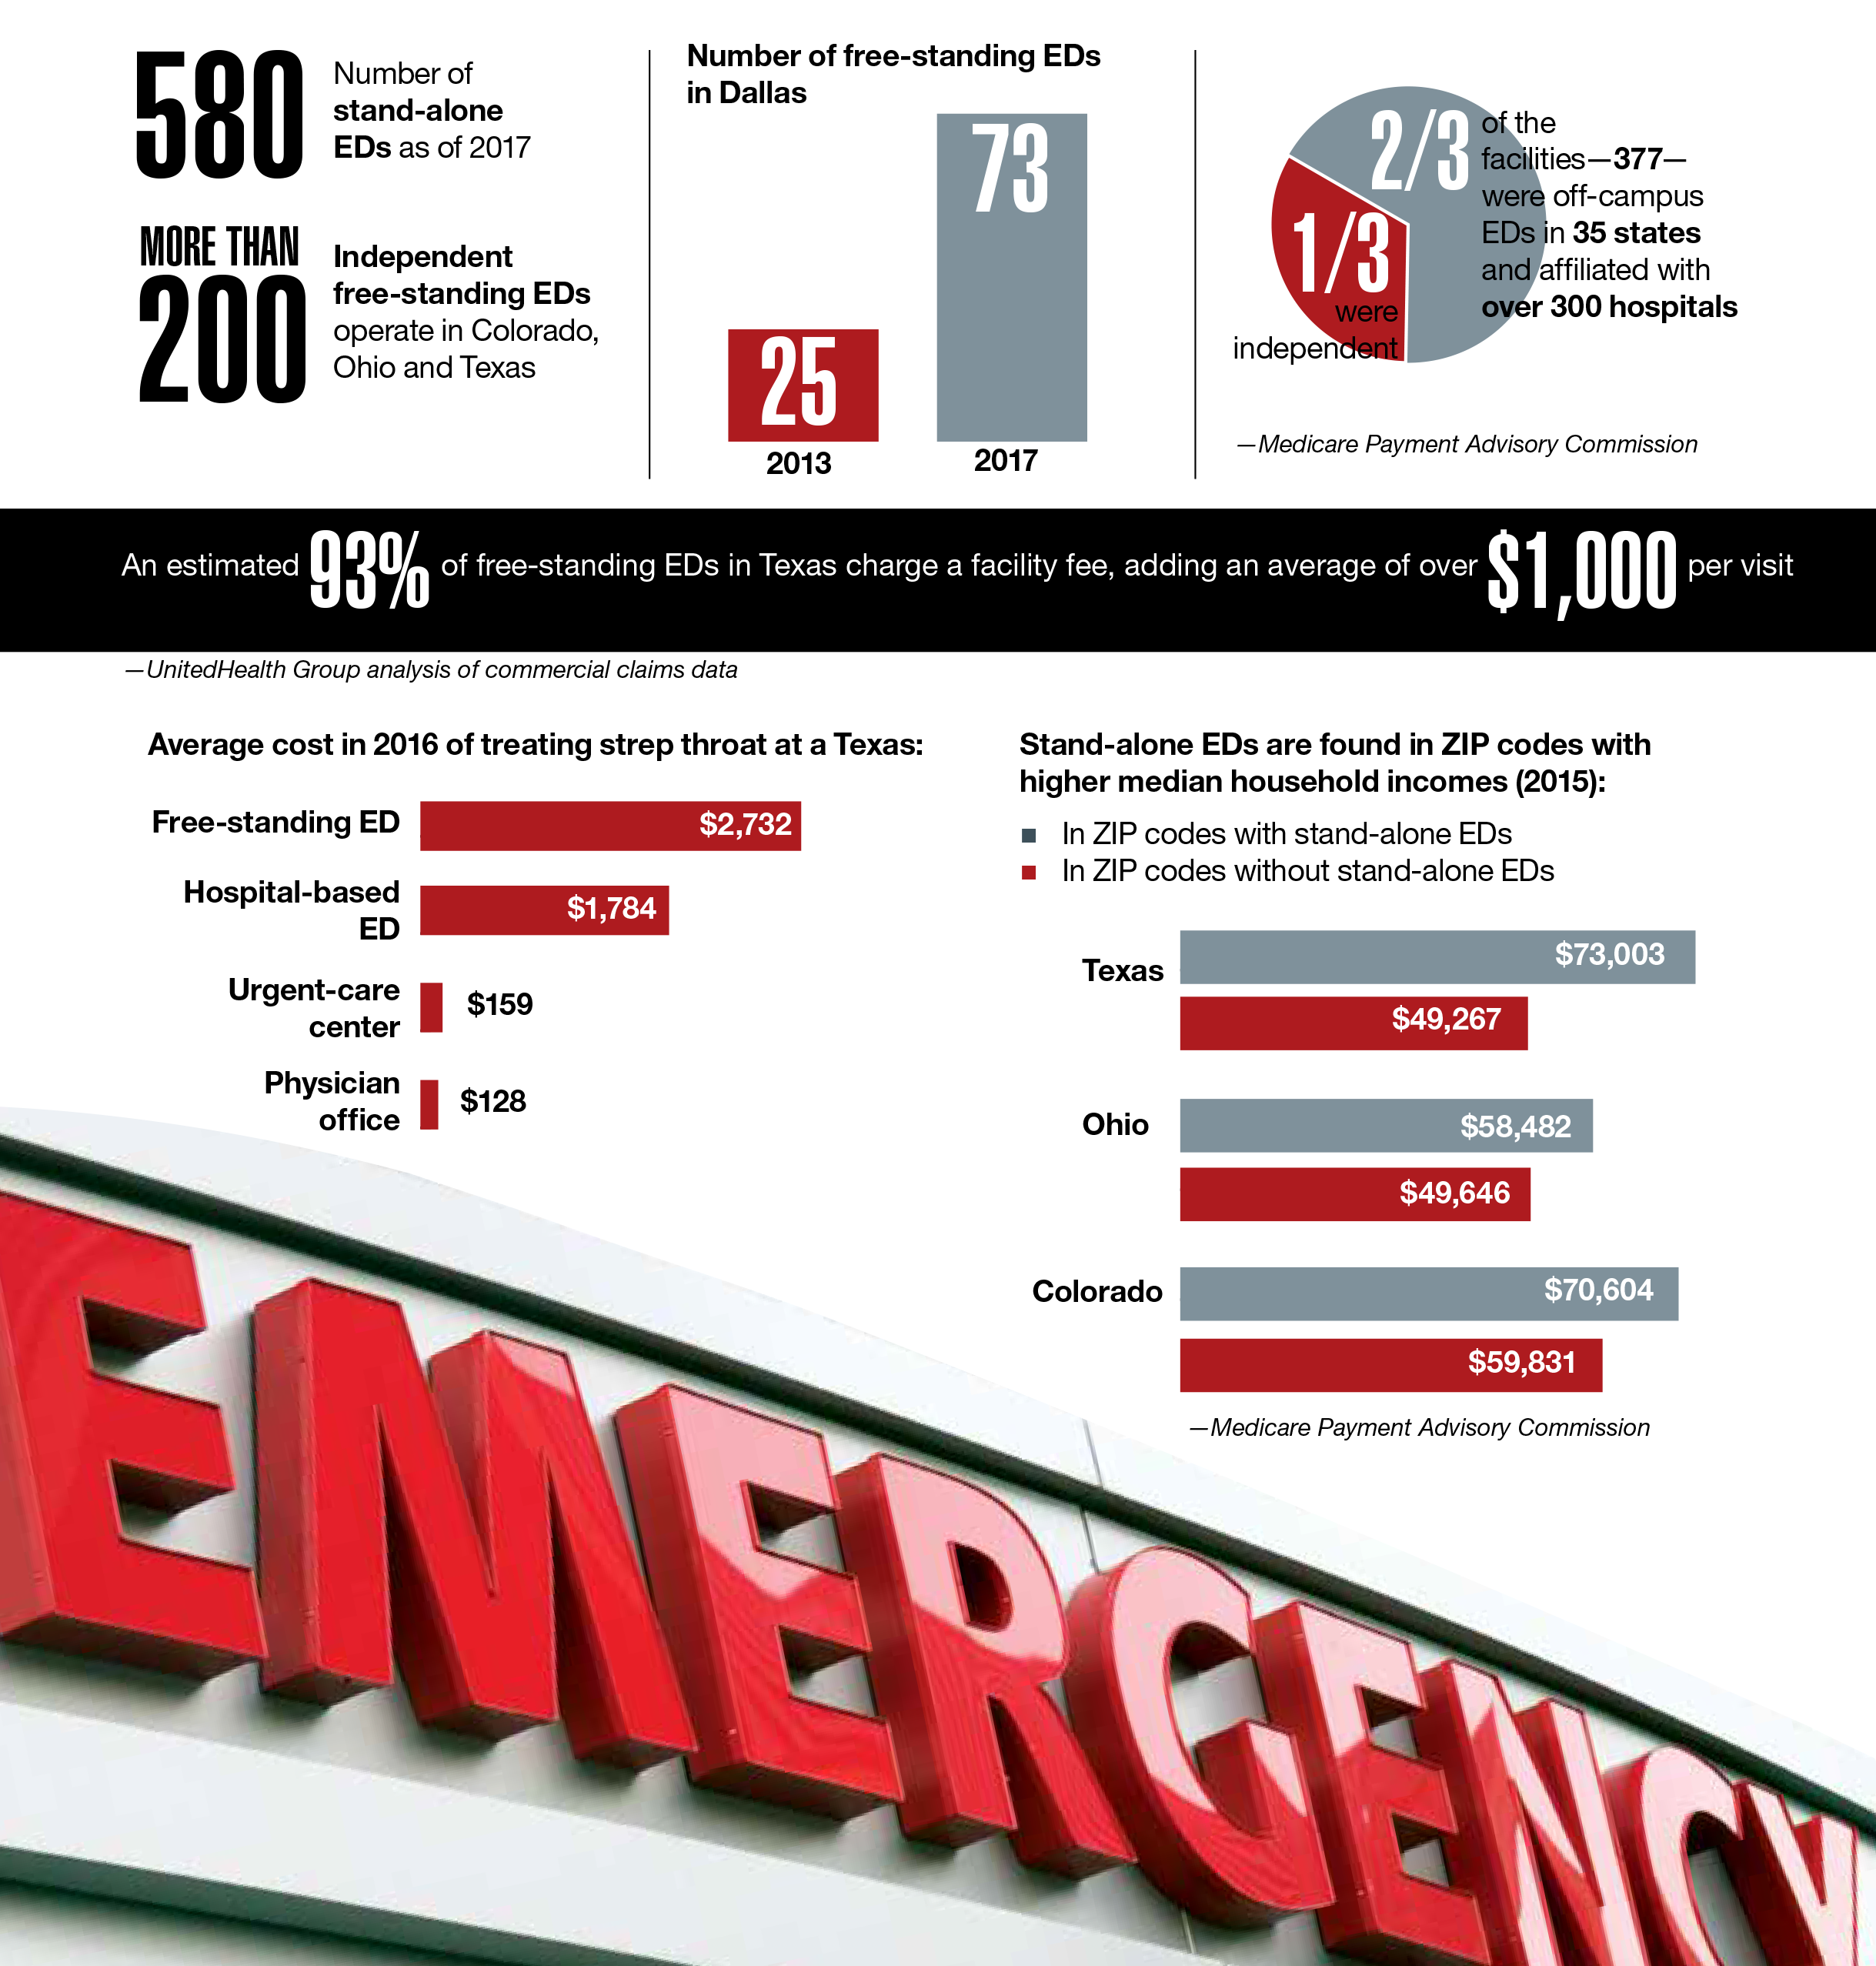 stand-alone emergency departments